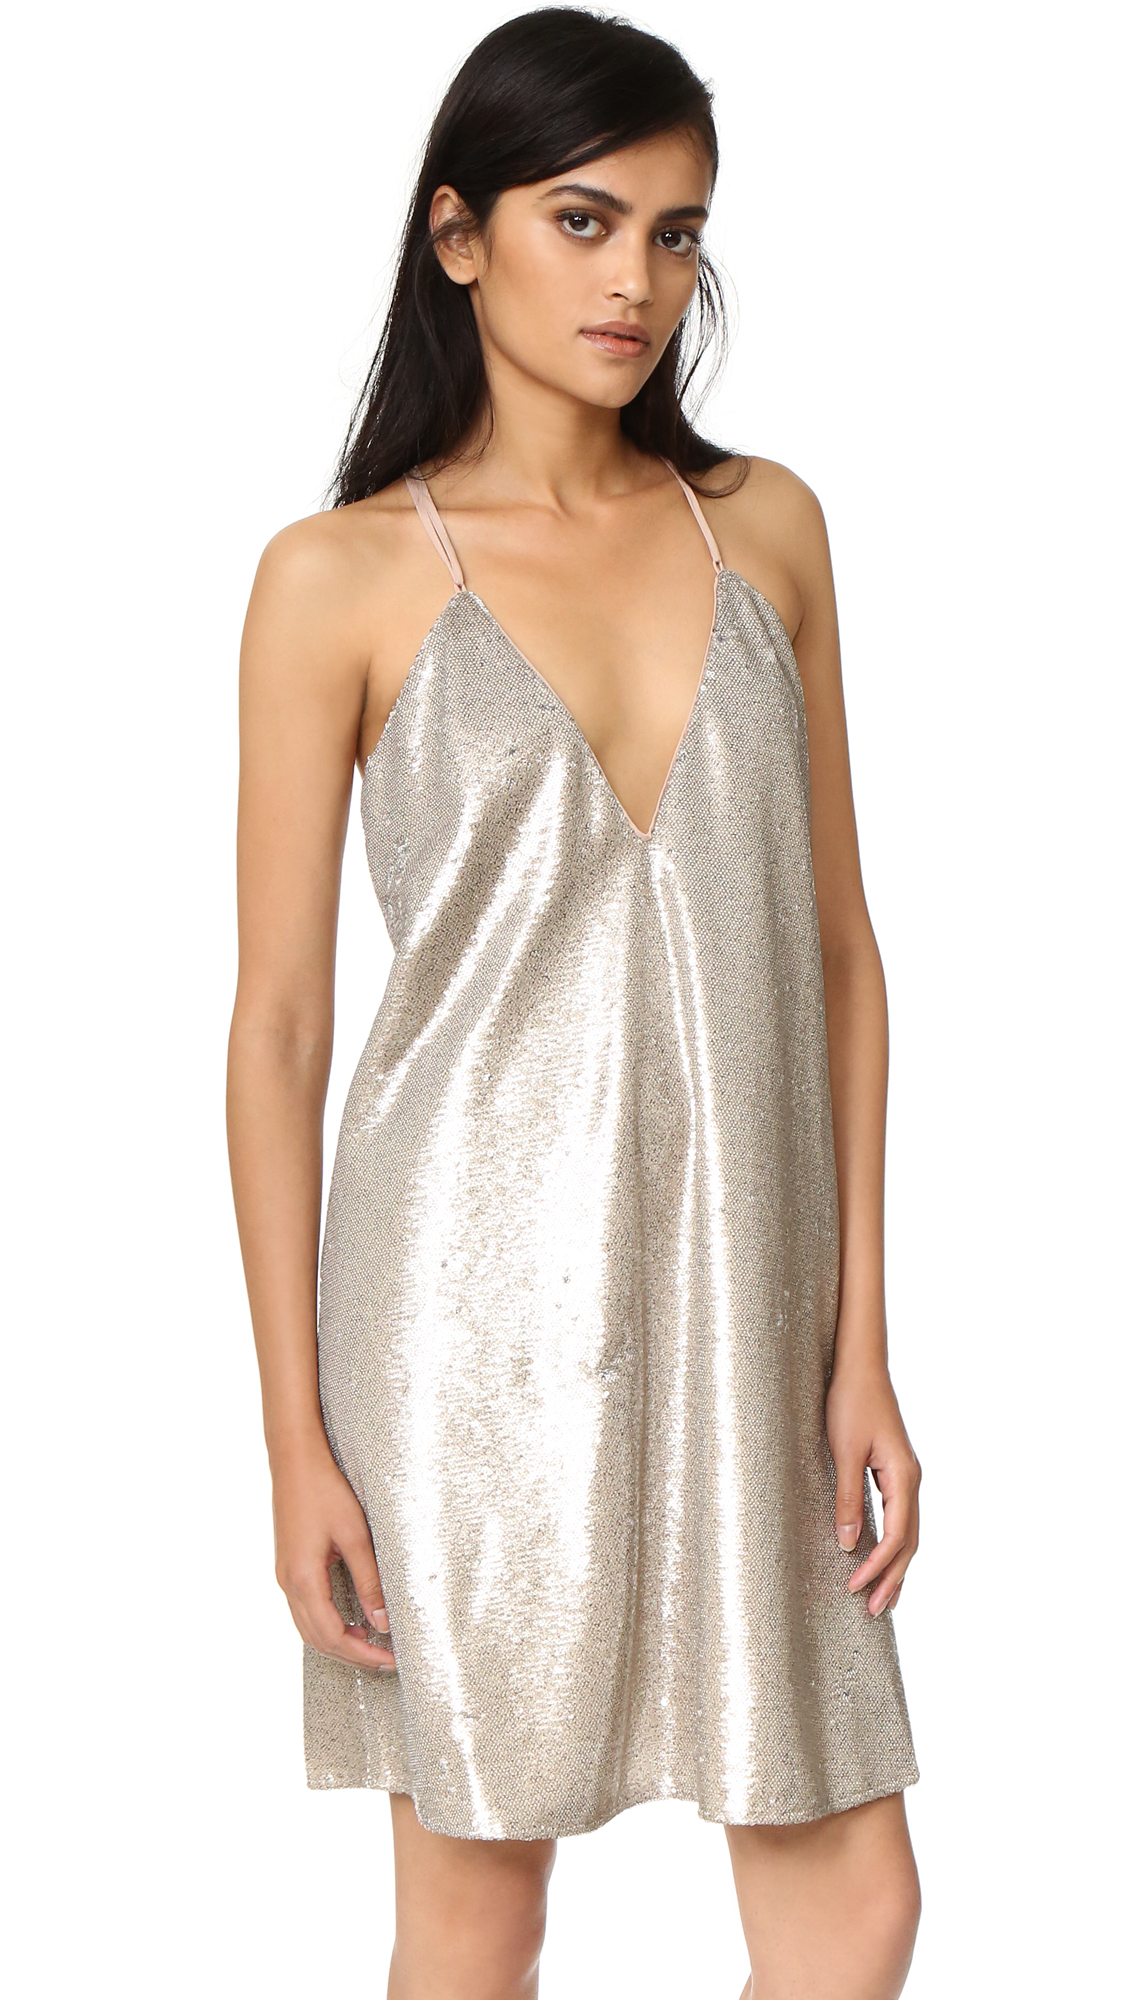 Shimmering sequins lend glamour to a shoulder baring The Jetset Diaries mini dress. Slim, adjustable straps cut across the low cut back. Lined. Fabric: Sequined mesh. 100% polyester. Hand wash. Imported, China. Measurements Length: 33.75in / 86cm, from